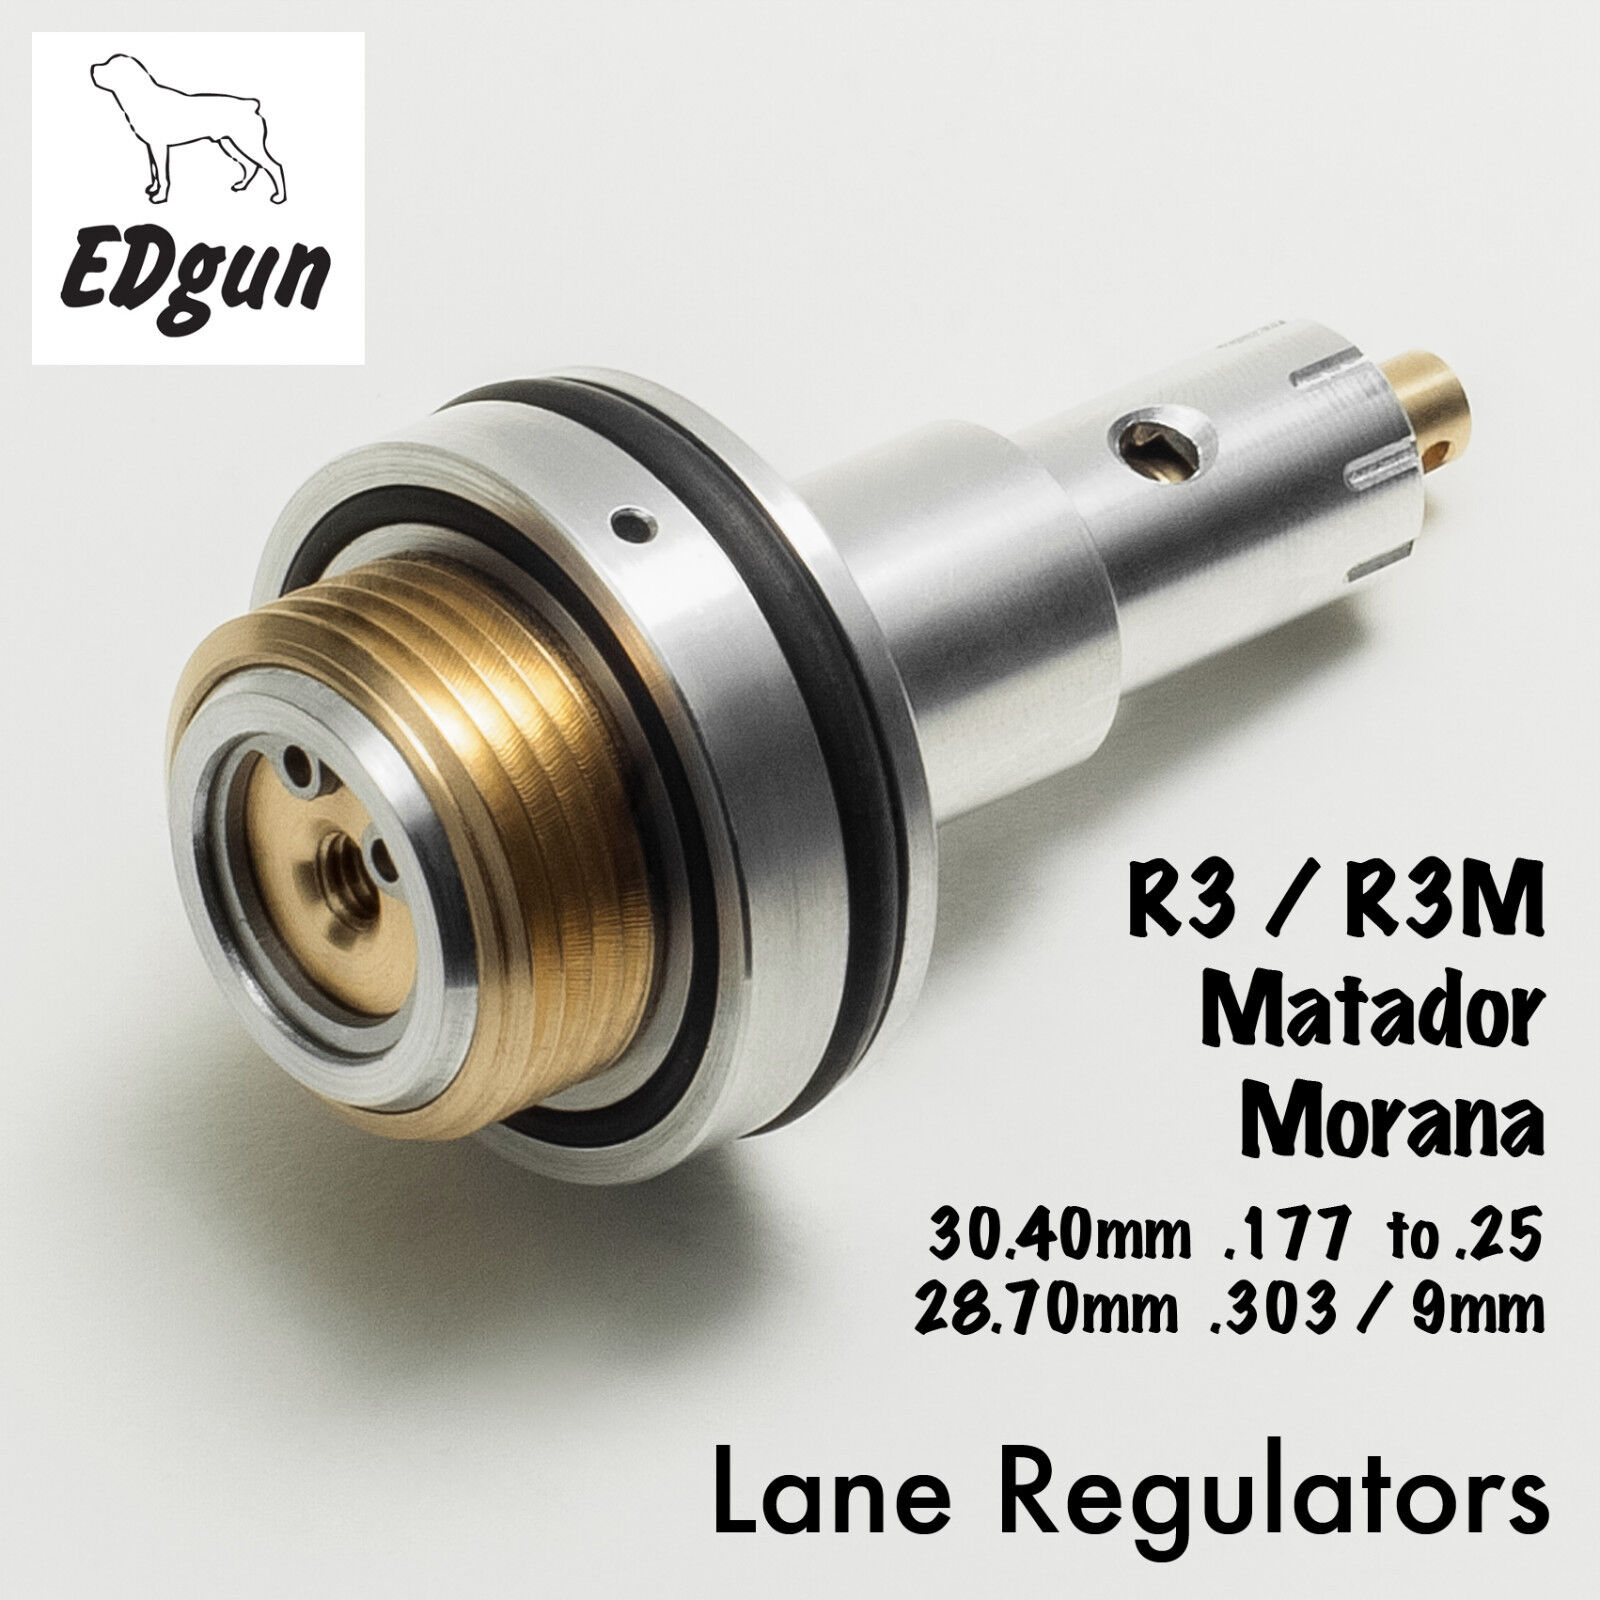 Regulador de rifle de aire edgun - 'Lane MK9 Lancet' - By Lane reguladores hecha en el.